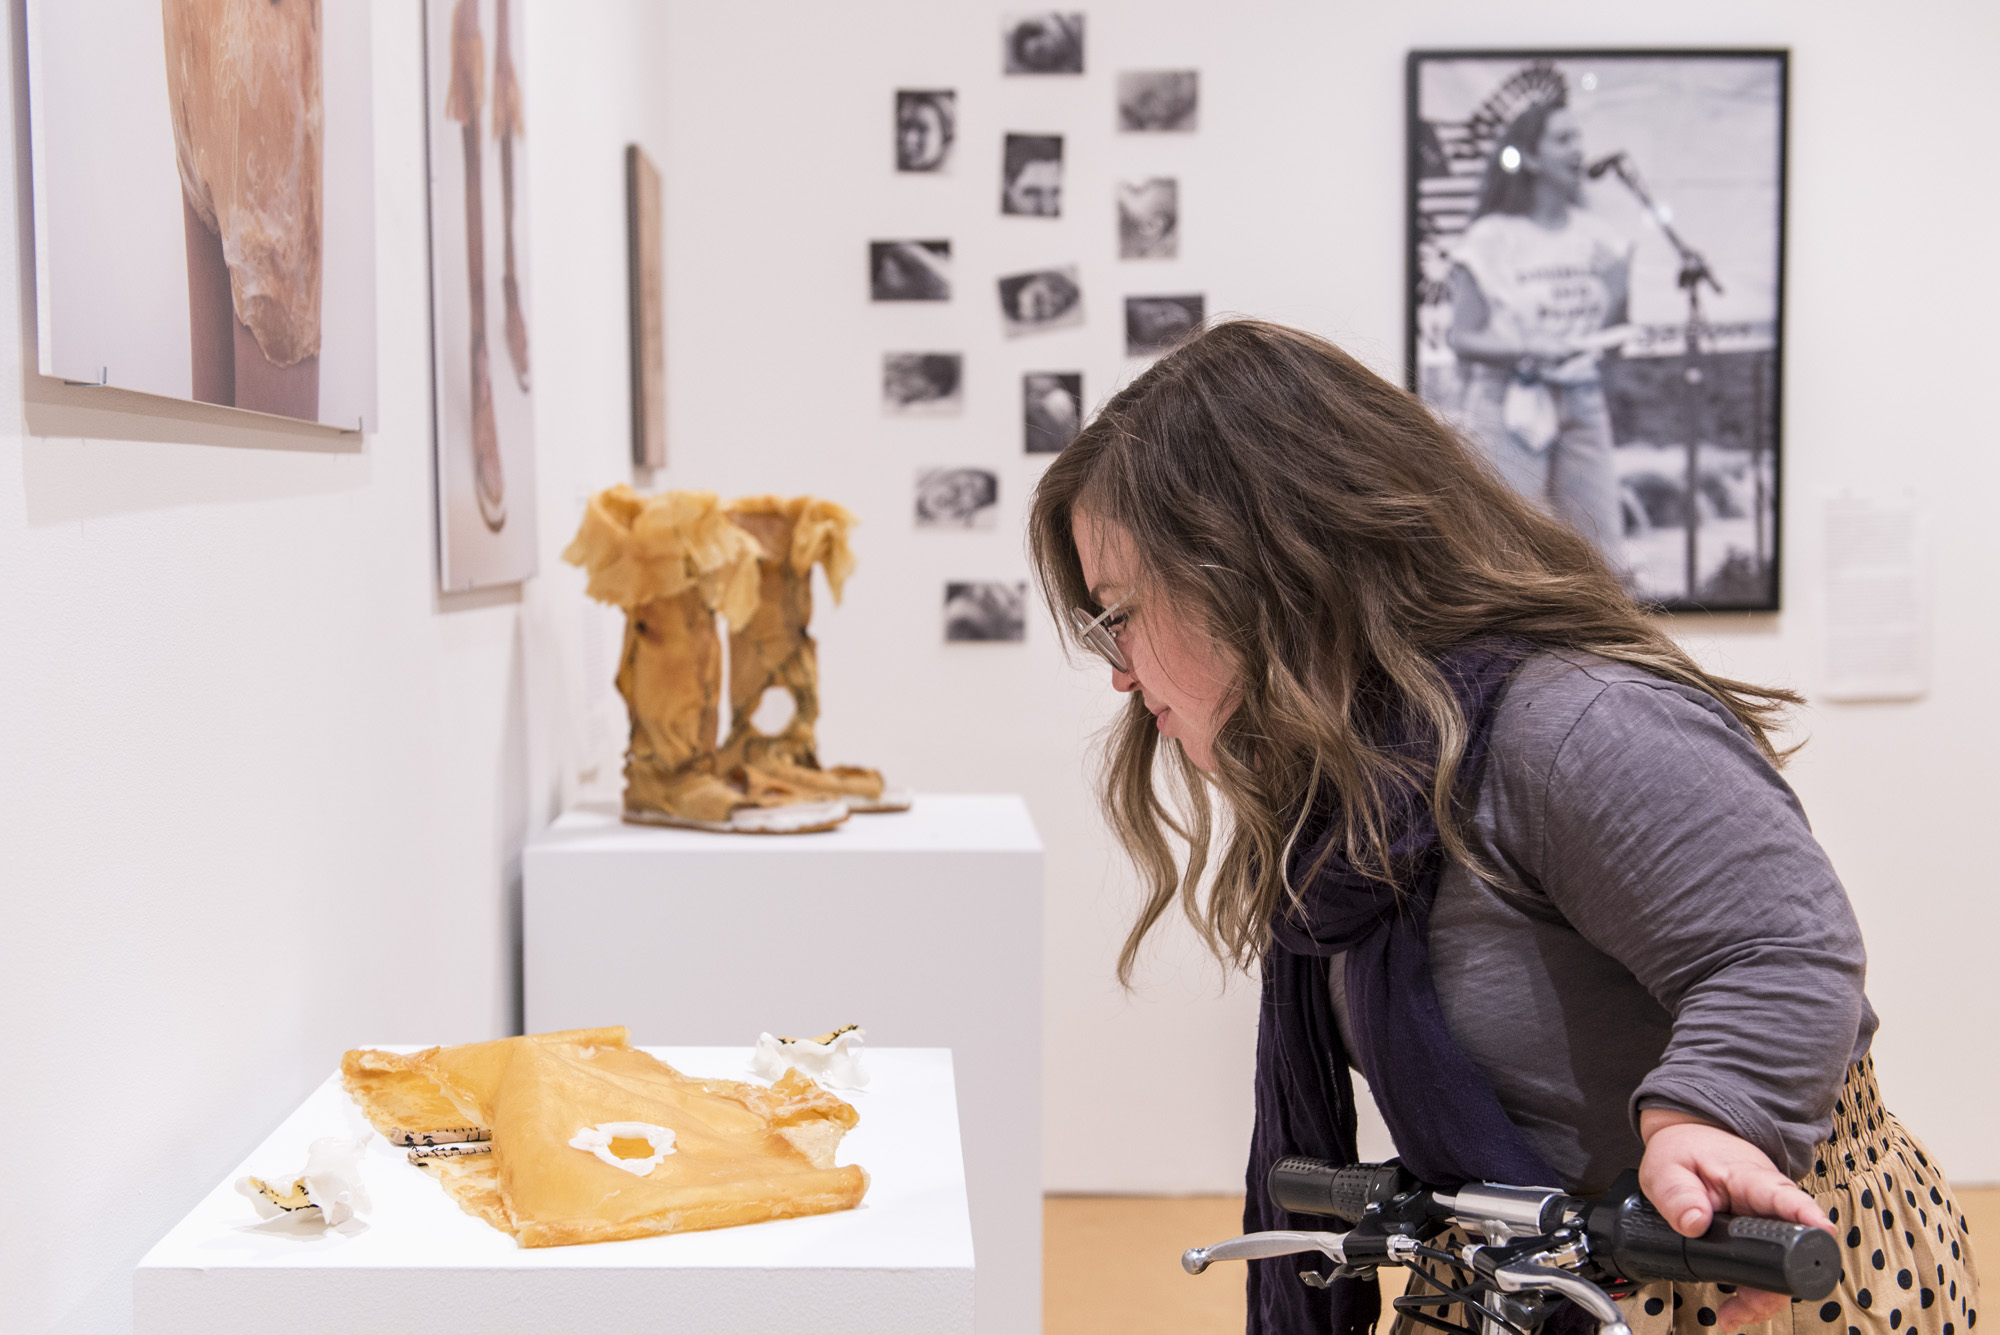 Image: Bri Beck leans into the frame from the right side, looking down at a tan mixed media garment piece on a white pedestal. Other works can be seen in the background. Photo by Ryan Edmund.